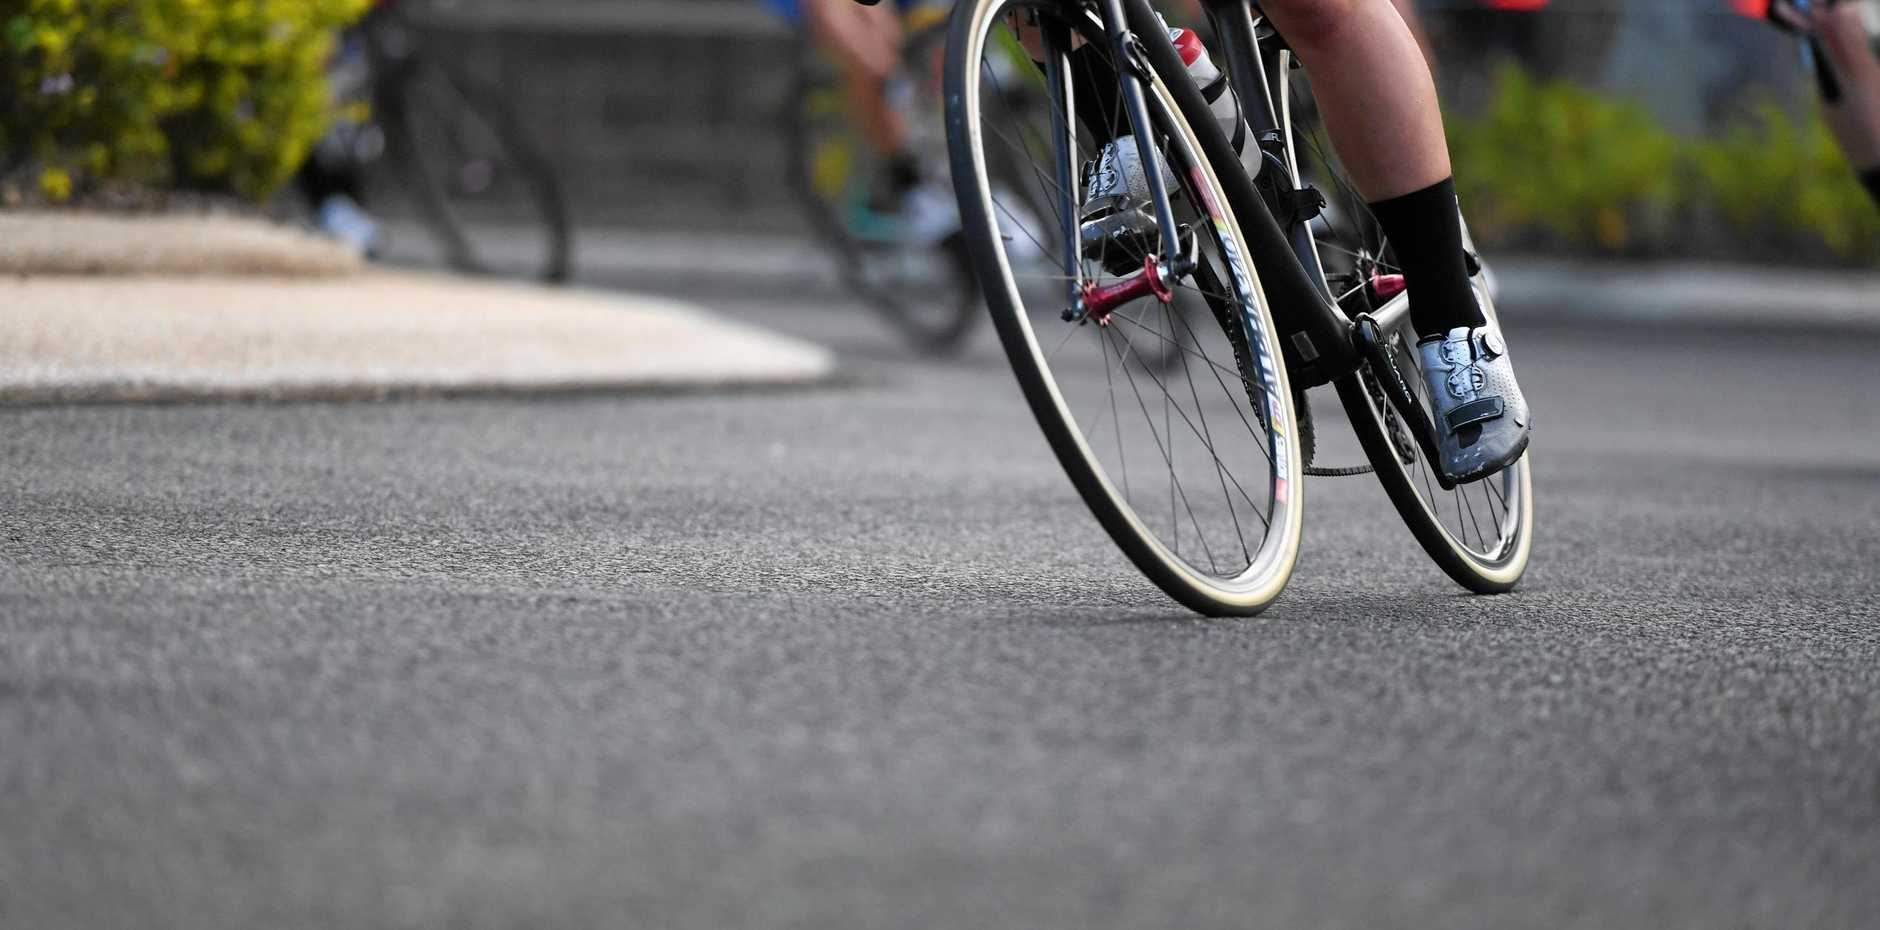 A vehicle was struck by a bicycle rider in Kingaroy.